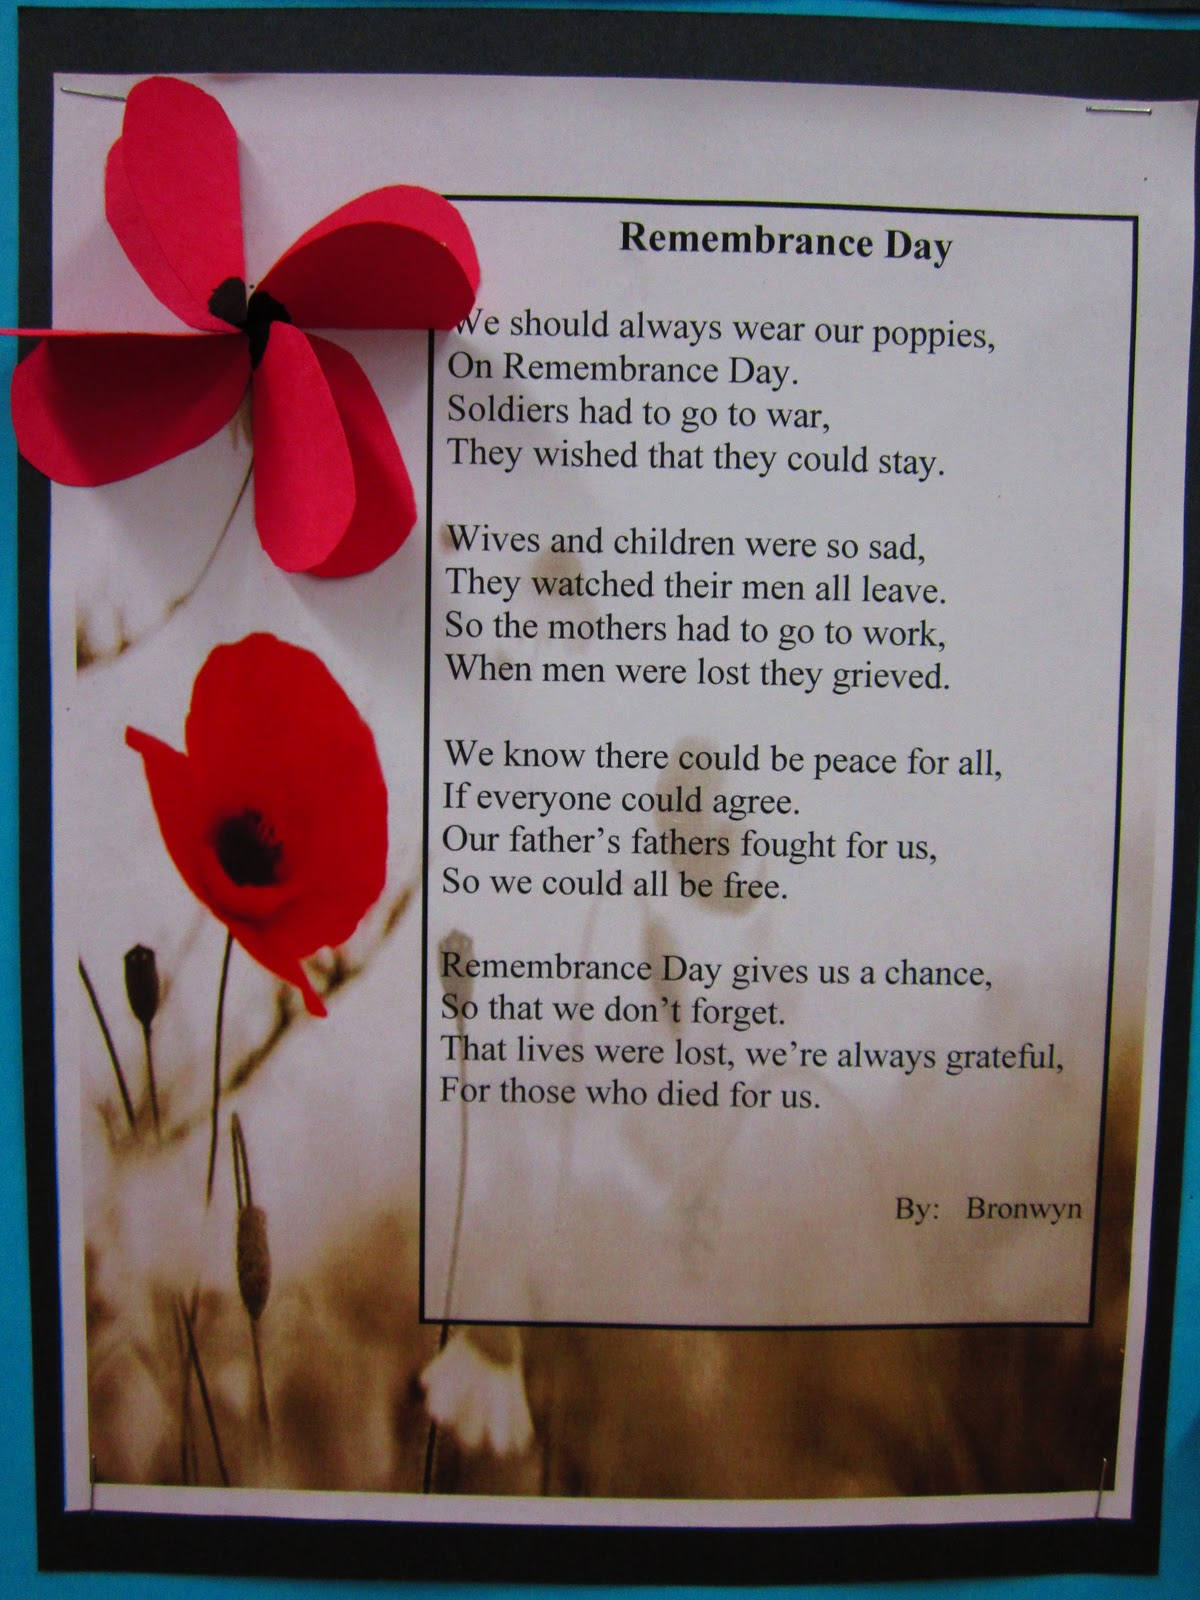 Inspiration for the poem 'In Flanders Fields' by John McCrae